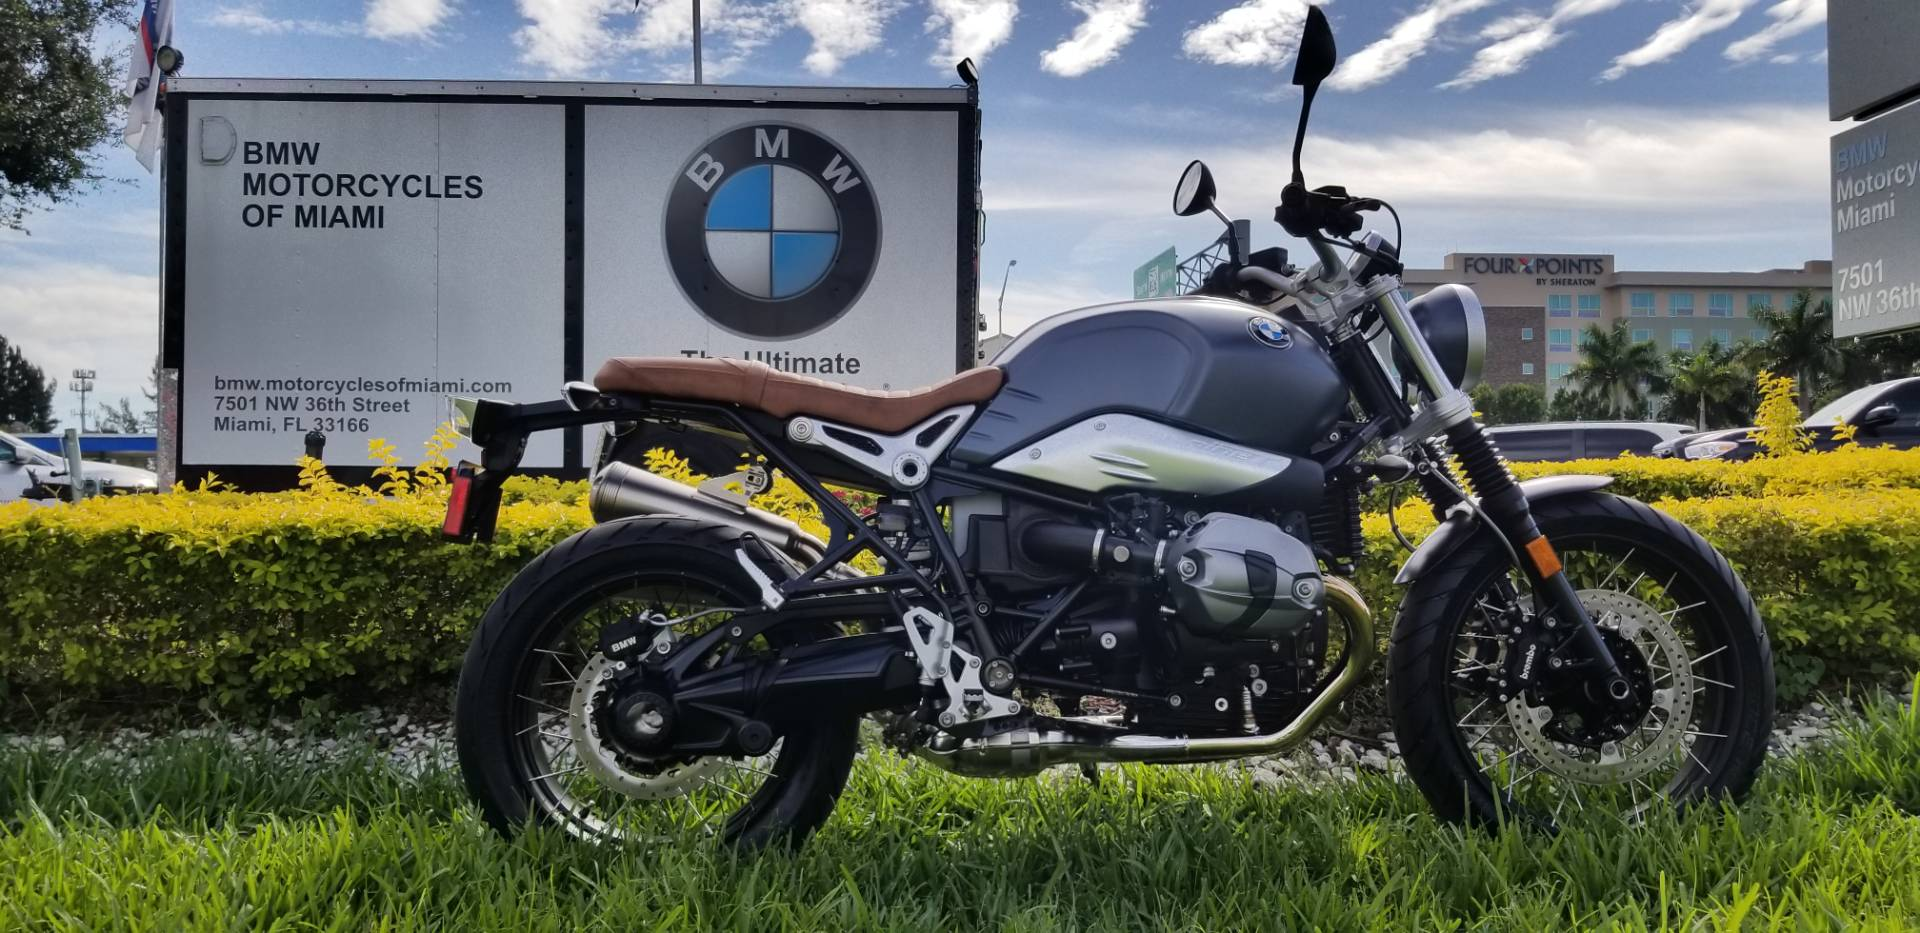 New 2019 BMW R NineT Scrambler for sale, BMW for sale, BMW Motorcycle Café Racer, new BMW Scrambler, Srambler, BMW. BMW Motorcycles of Miami, Motorcycles of Miami - Photo 18